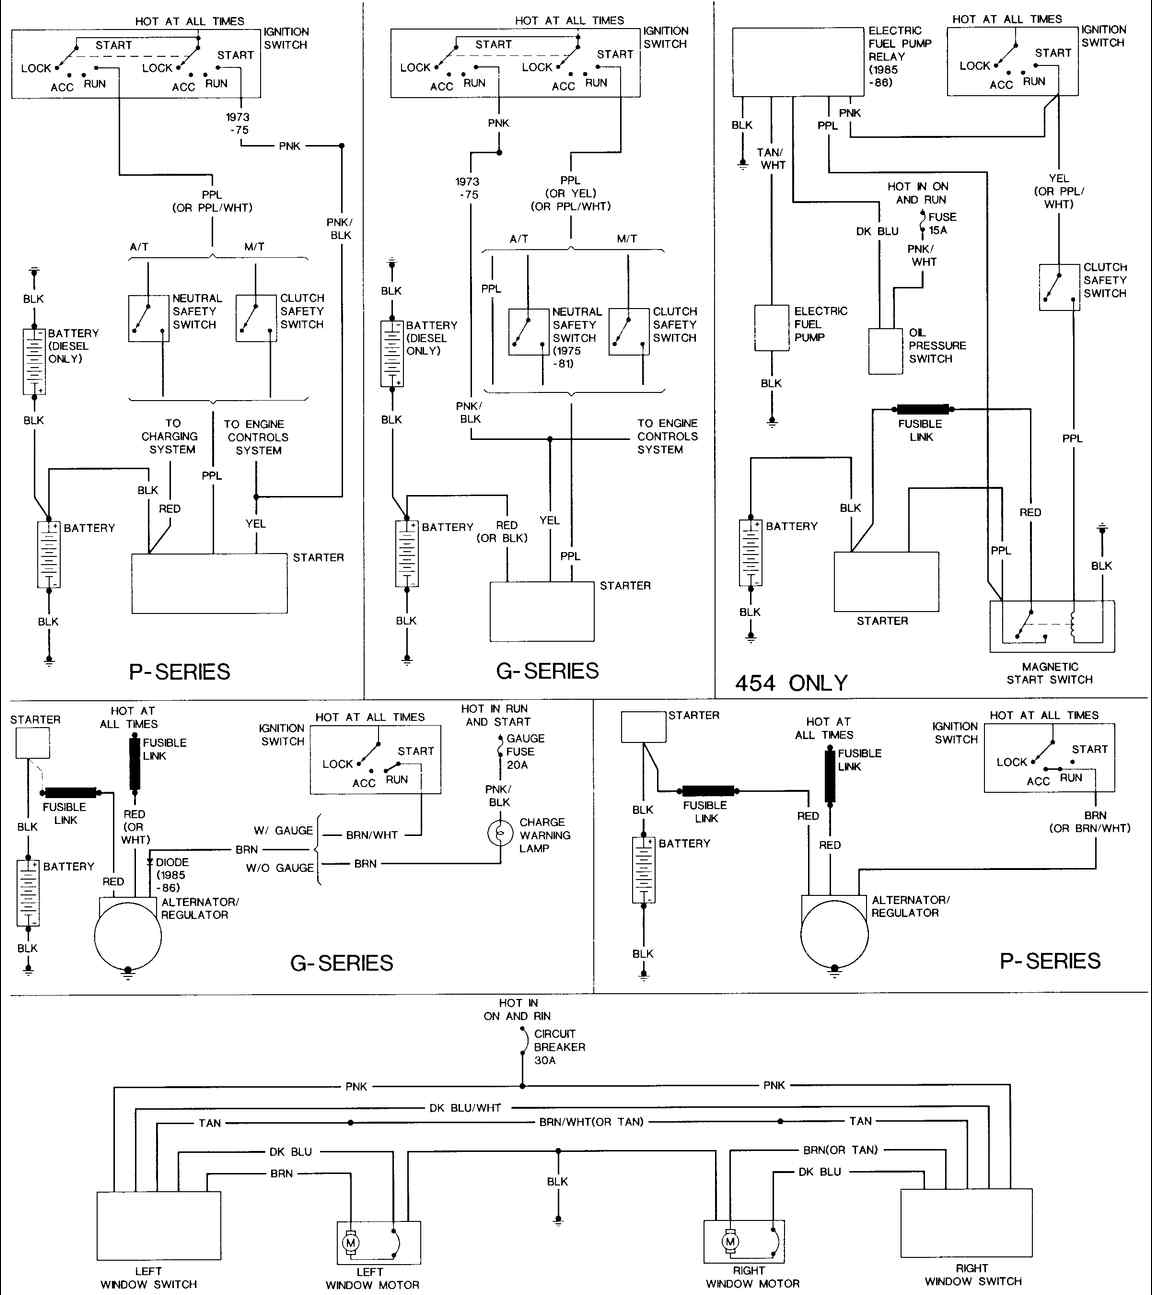 [QMVU_8575]  1985 Camaro Wiring Diagram On An 03 Chevy Silverado Fuel Filter -  ketaping.2.allianceconseil59.fr | 1985 Camaro Wiring Diagram |  | ketaping.2.allianceconseil59.fr